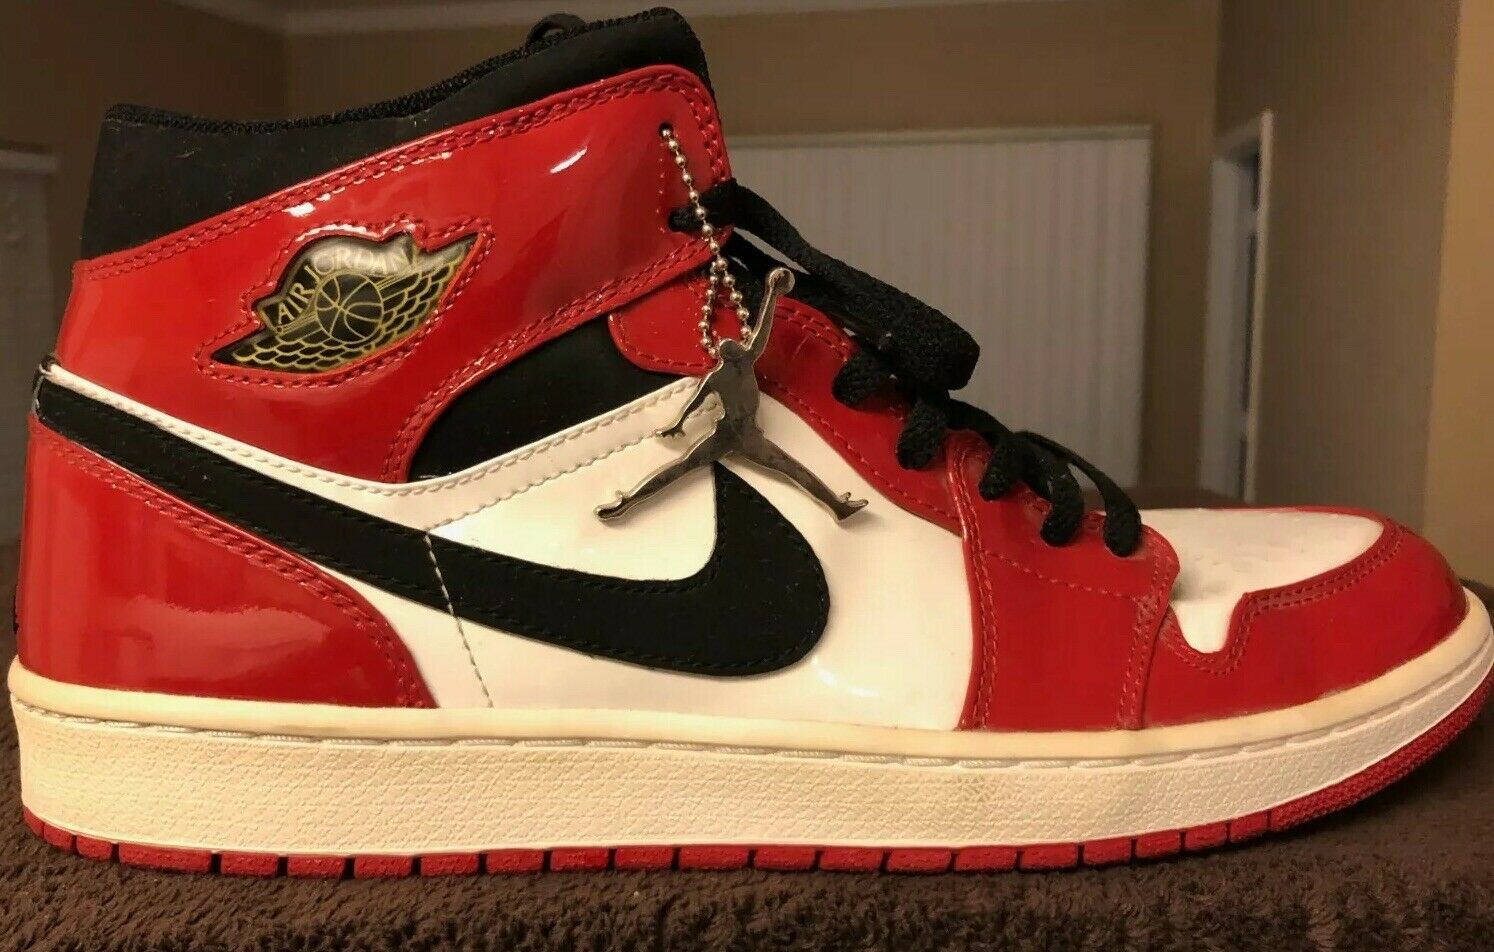 DS 2003 Nike Air Jordan 1 Retro Patent Leather White black-varsity Red